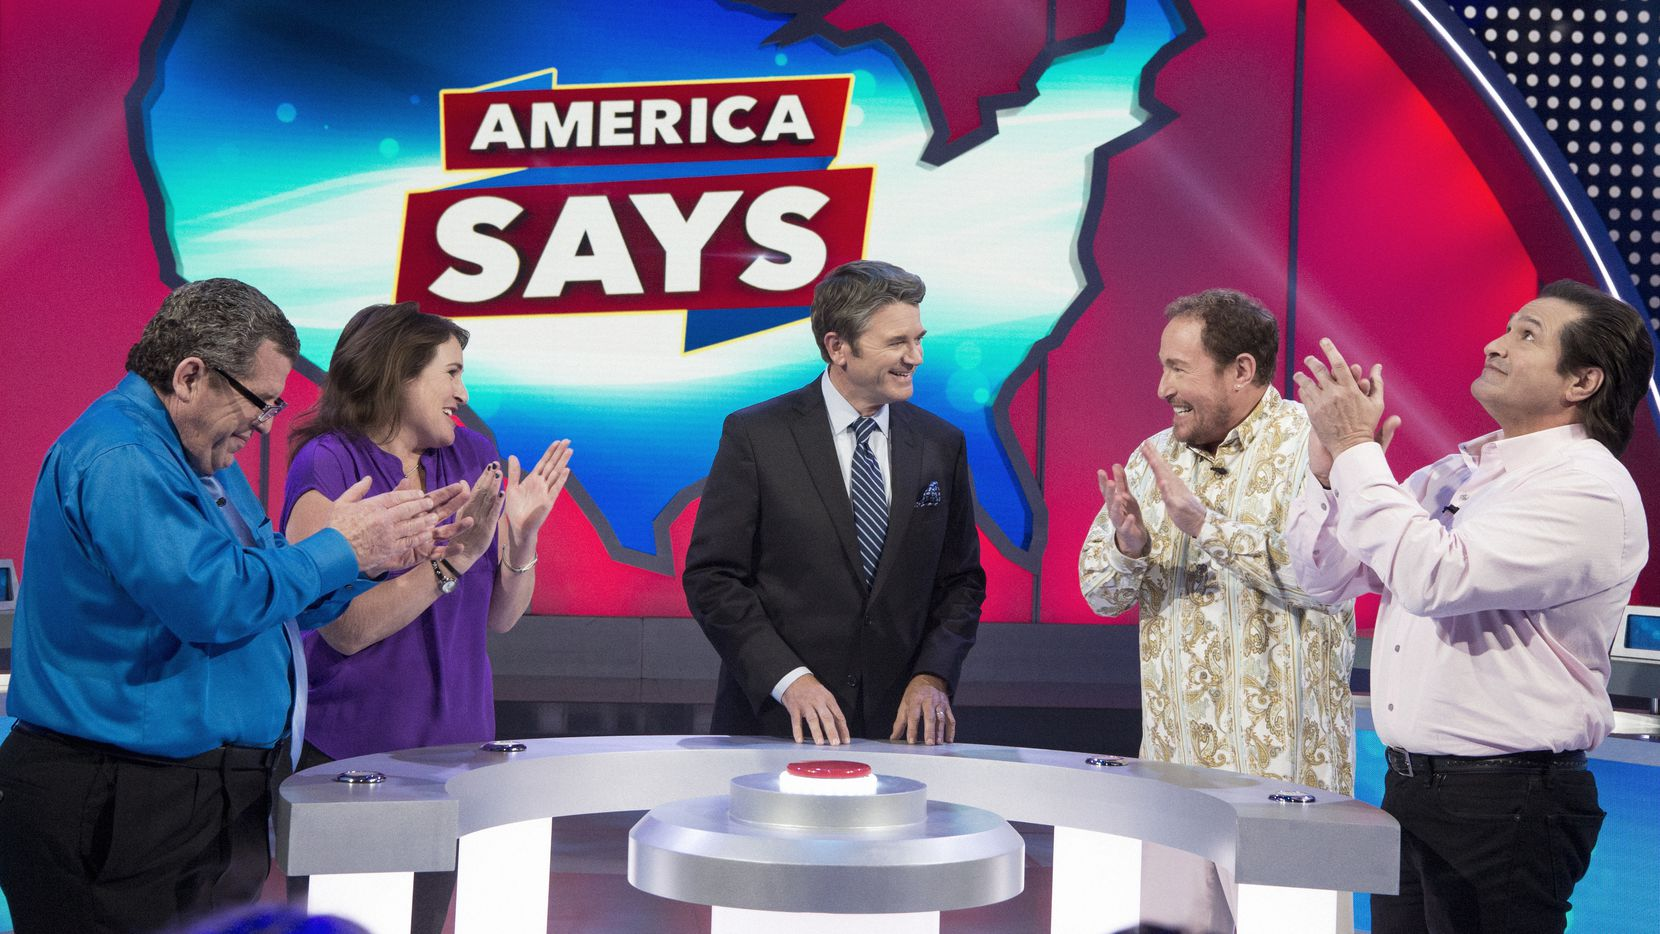 America Says is one of the Game Show Network's original programs.